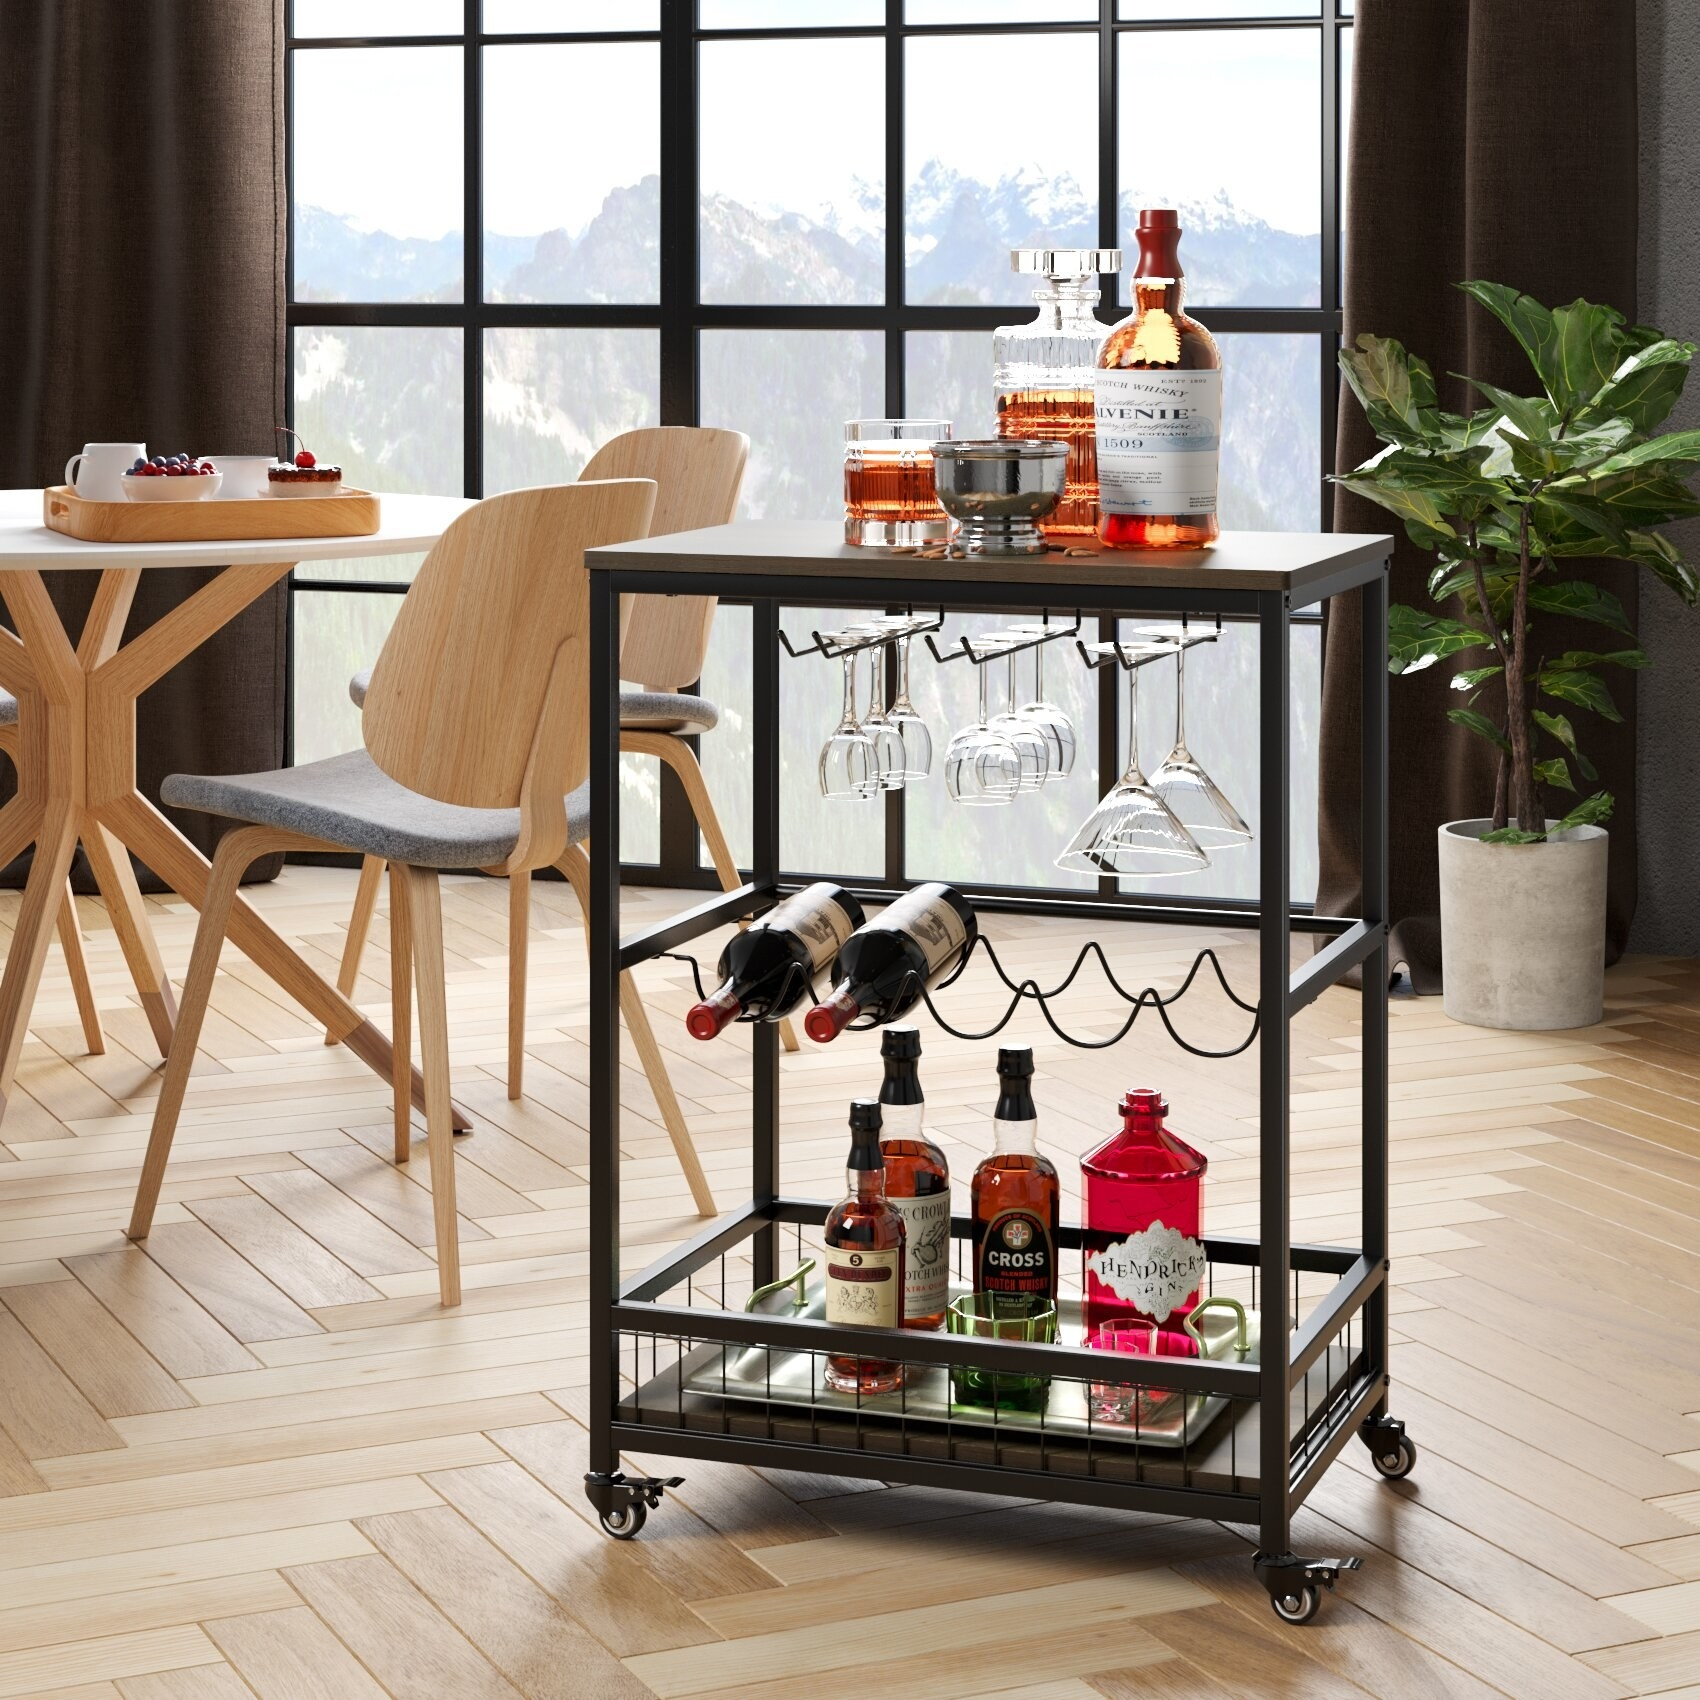 The bar cart with an assortment of liquor and glasses on it